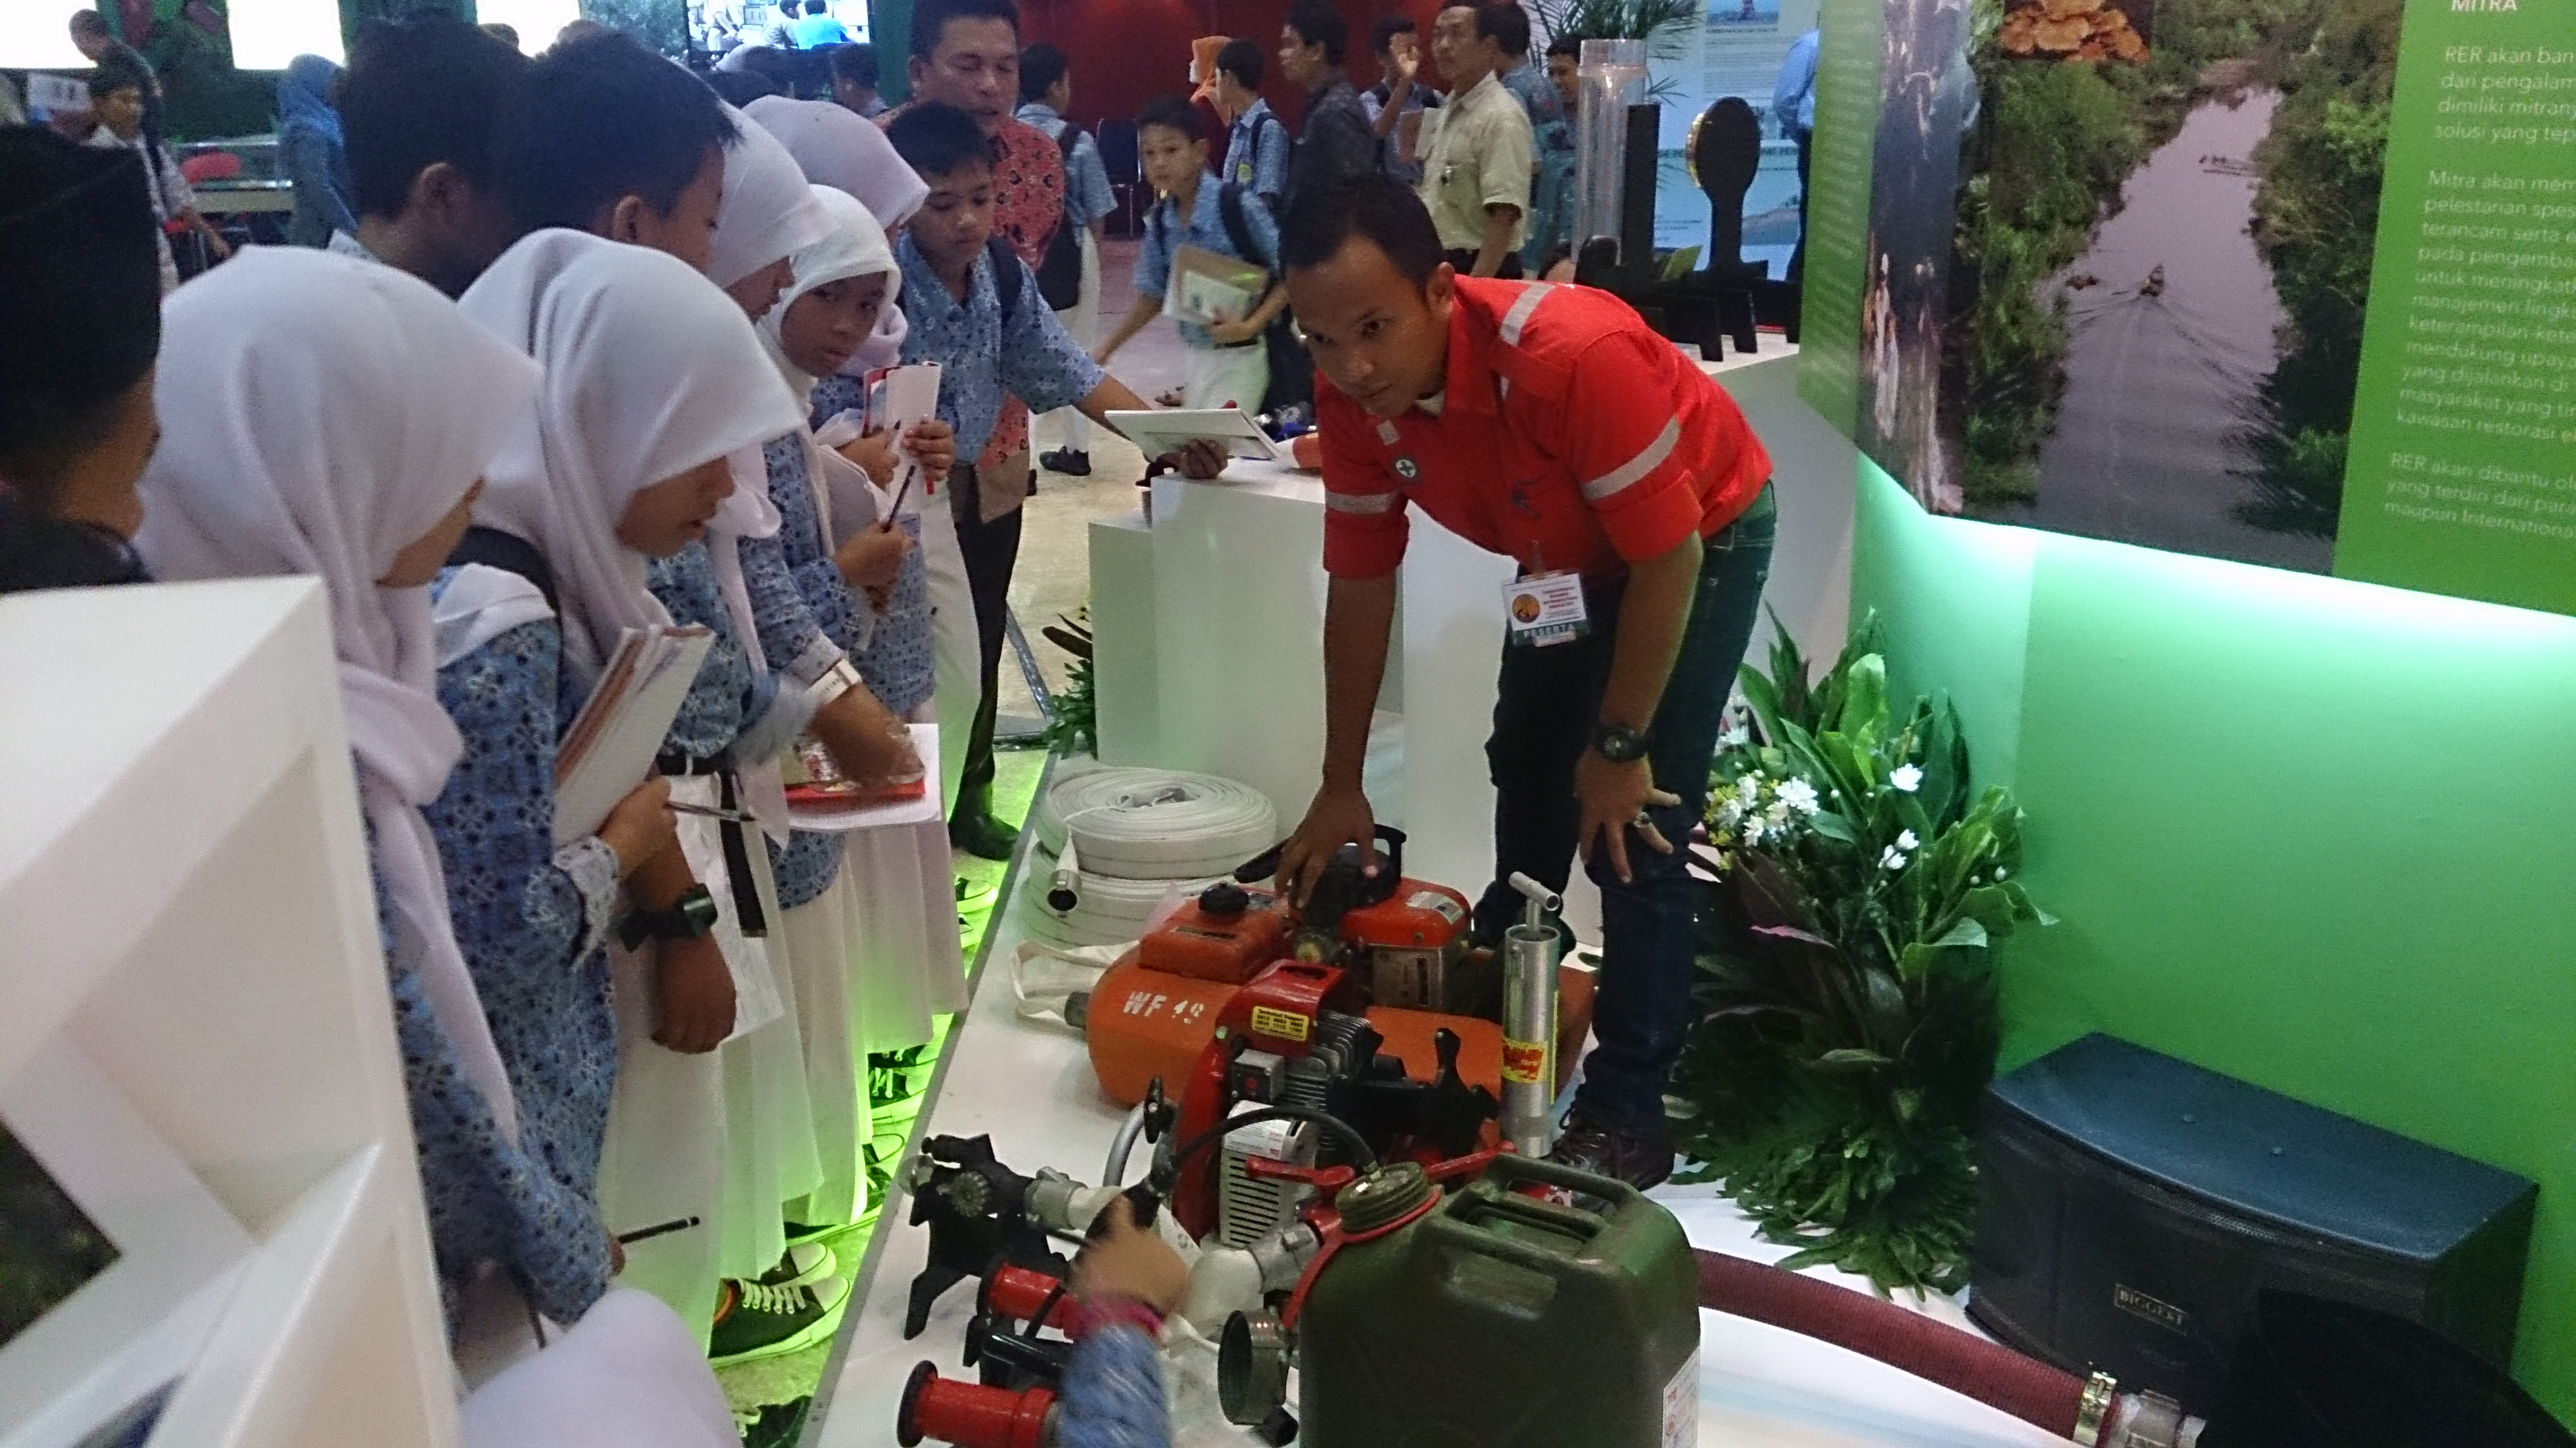 RAPP Fire Fighter, Panji Bintoro explains to students how the fire supression equipments are used.